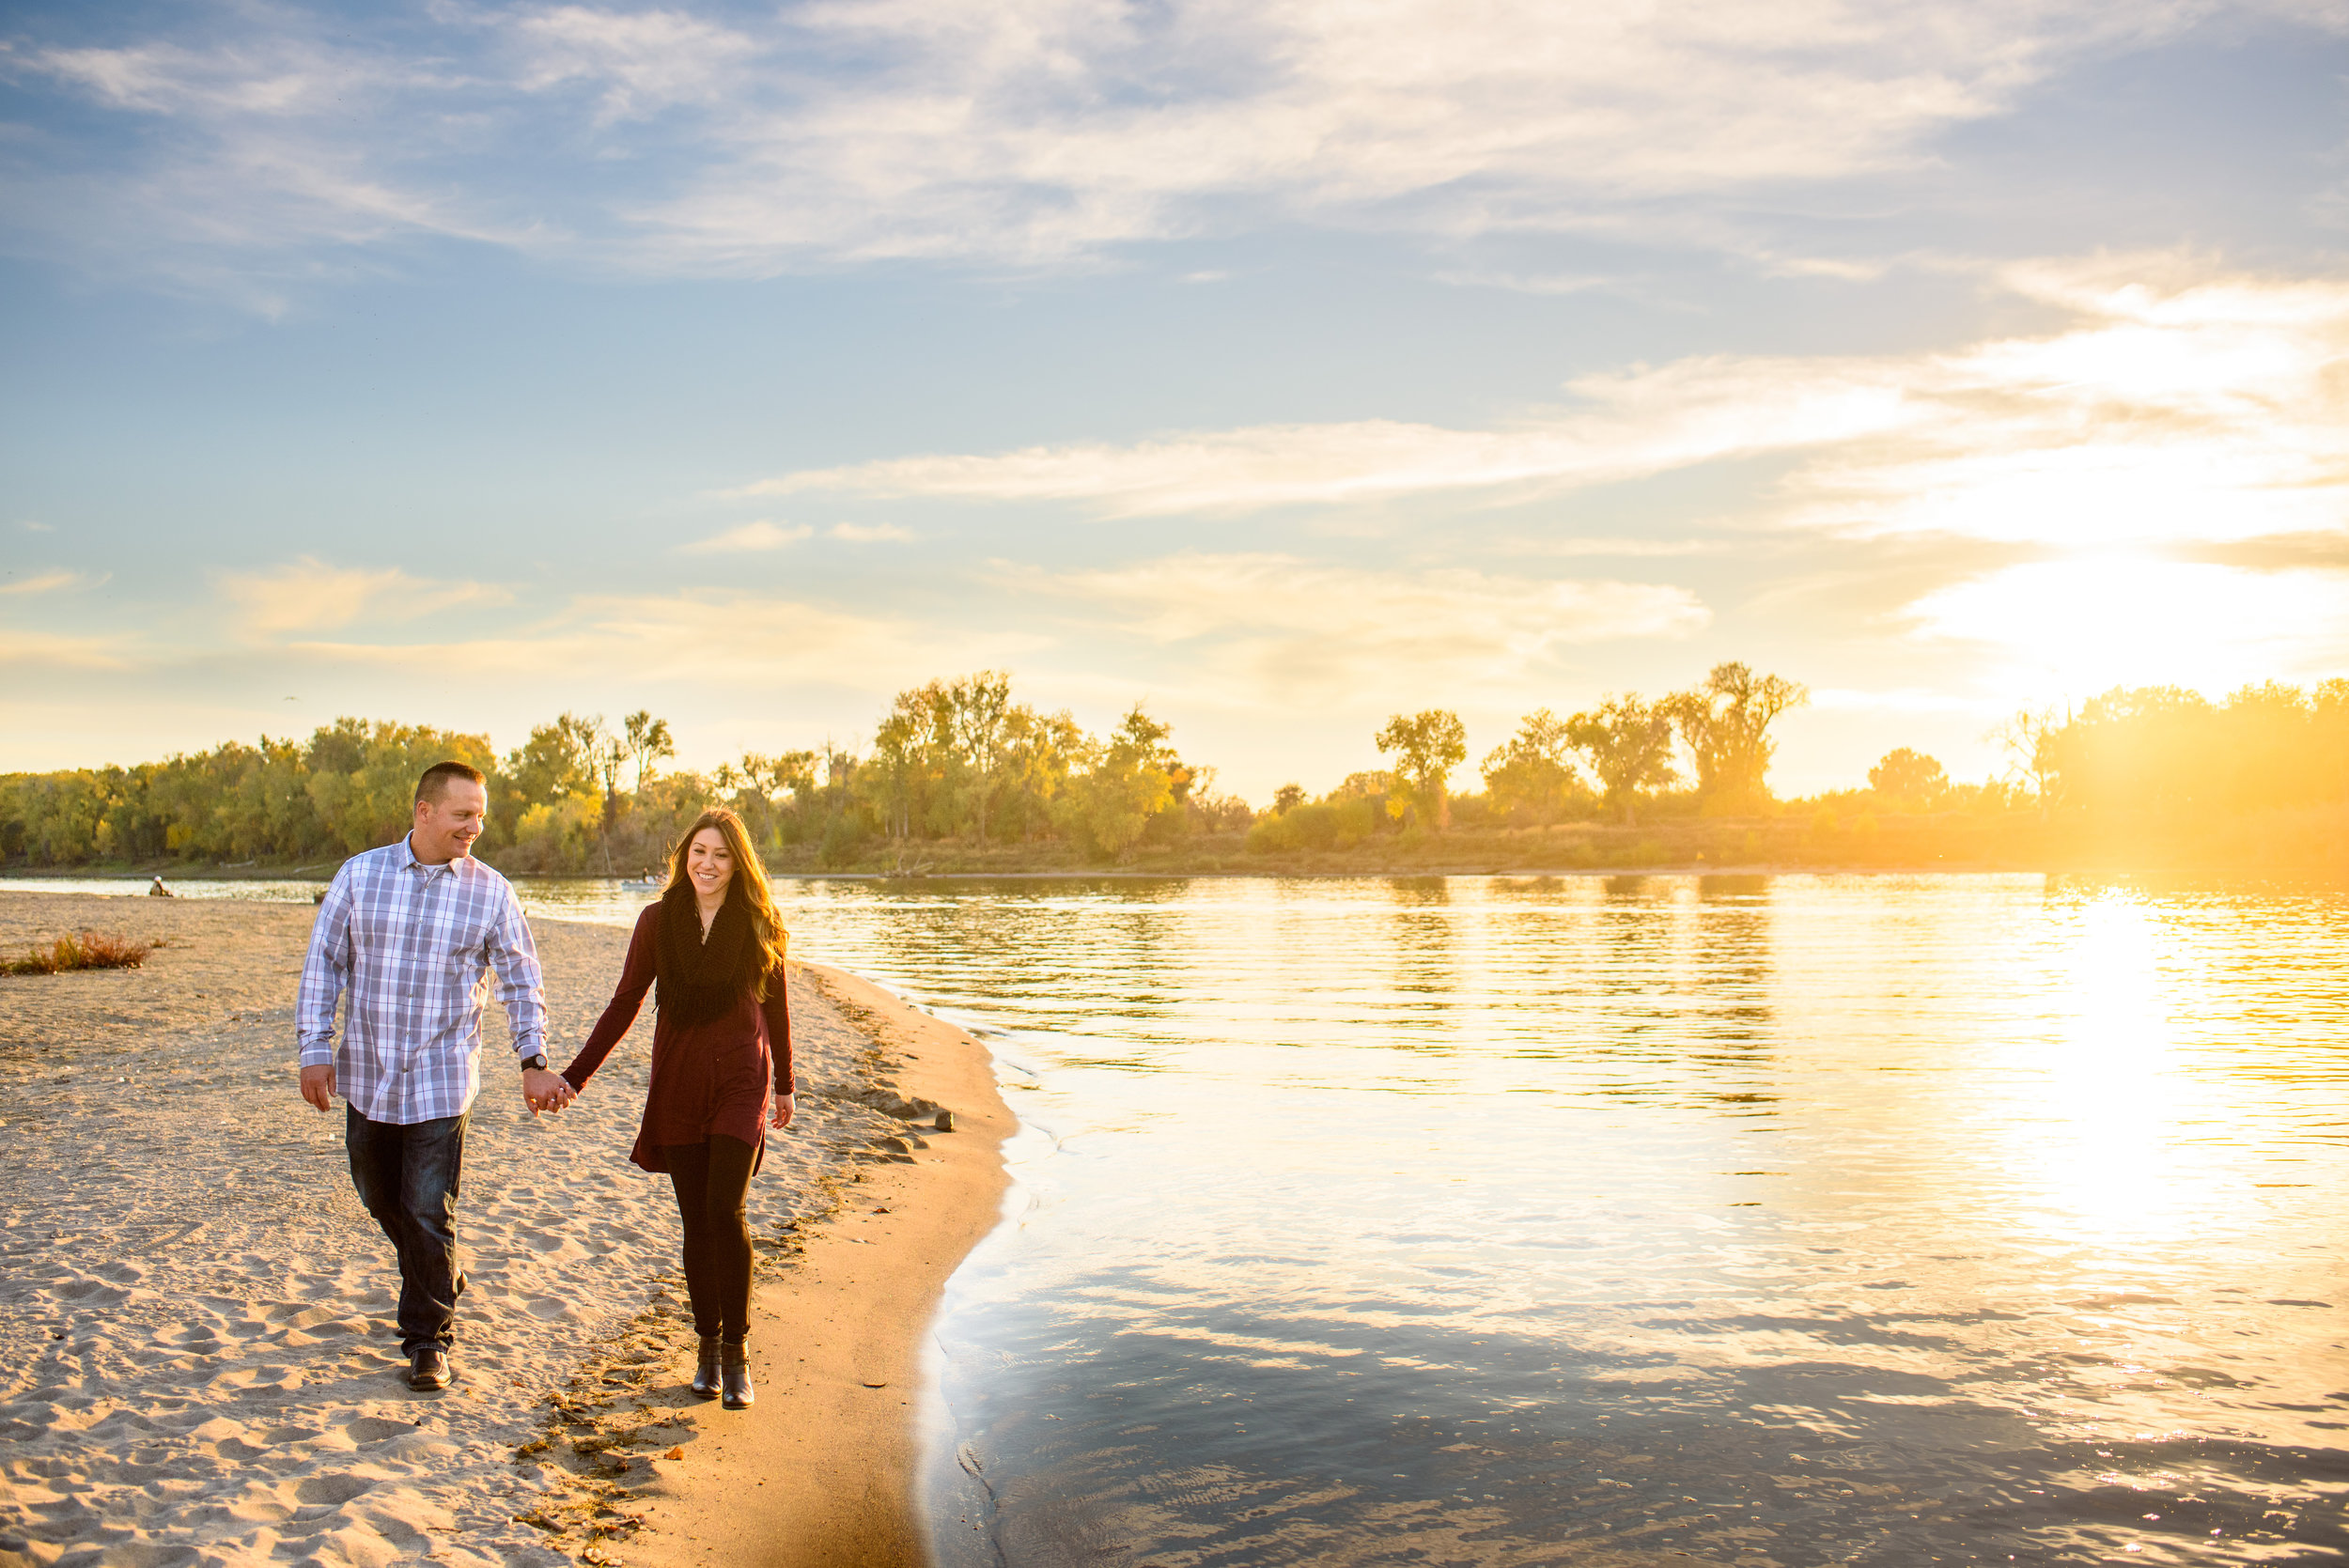 nicole-luke-008-sacramento-engagement-wedding-photographer-katherine-nicole-photography.JPG